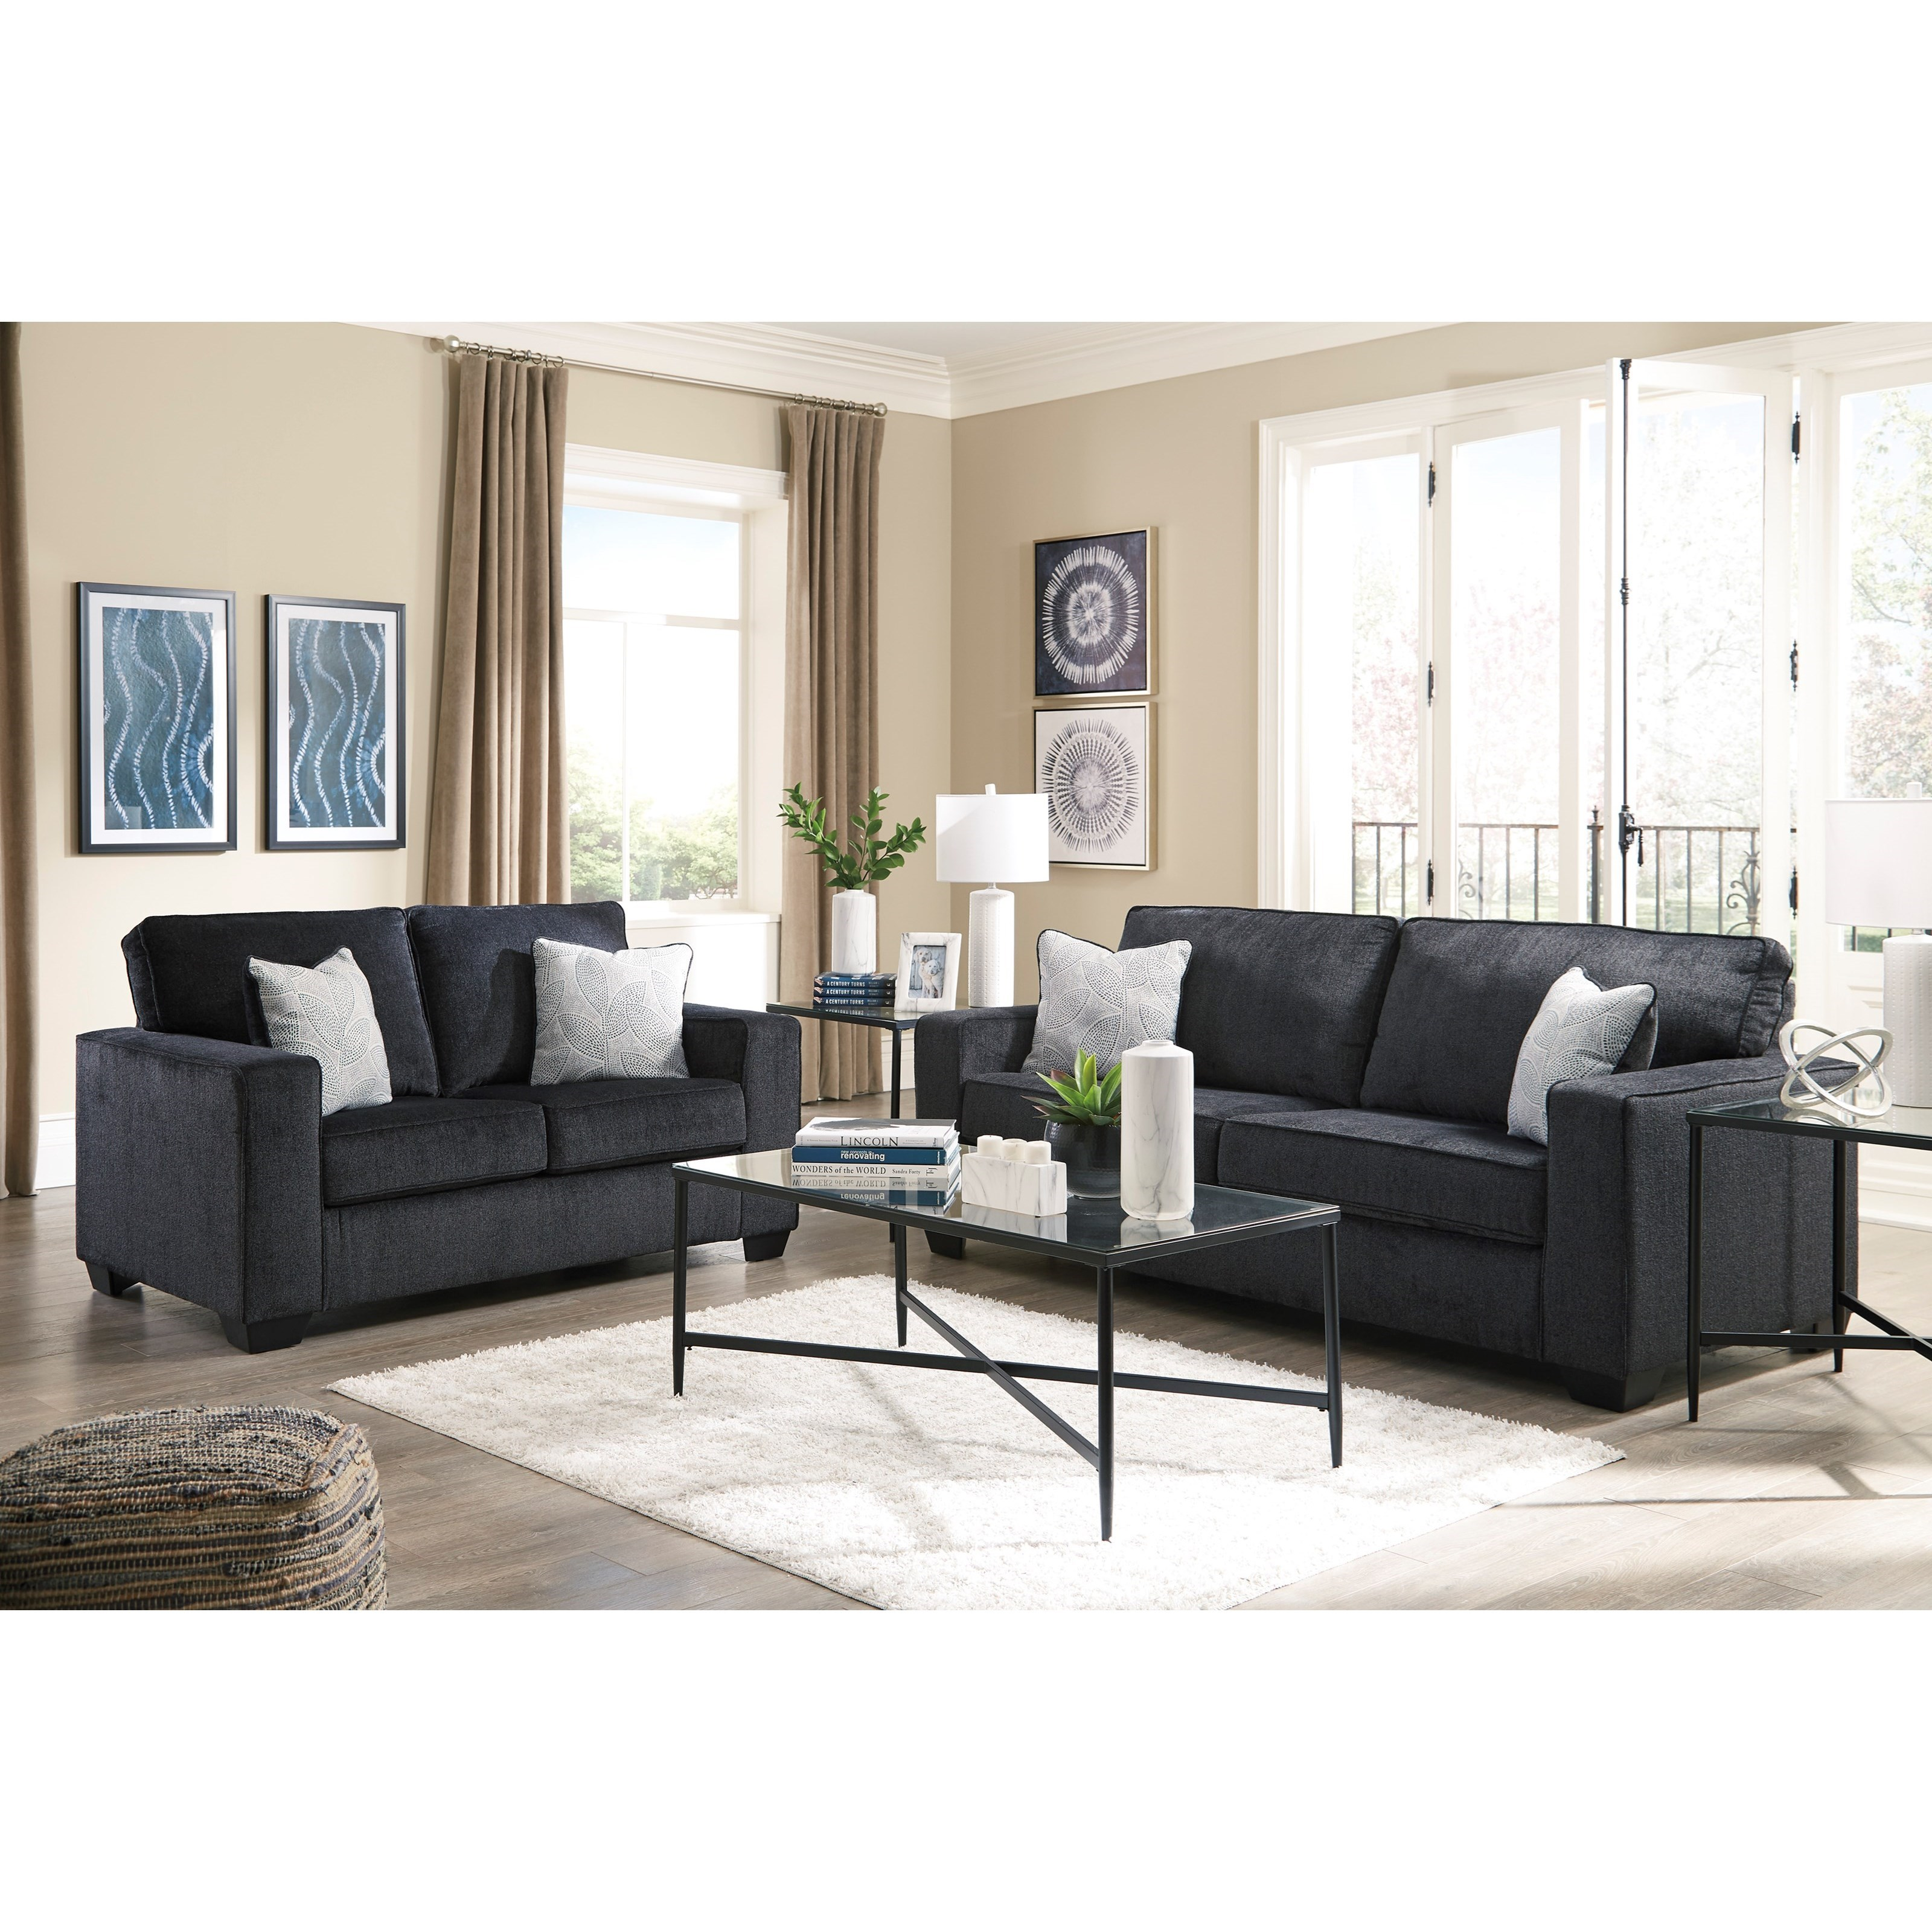 Altari Living Room Group by Ashley (Signature Design) at Johnny Janosik